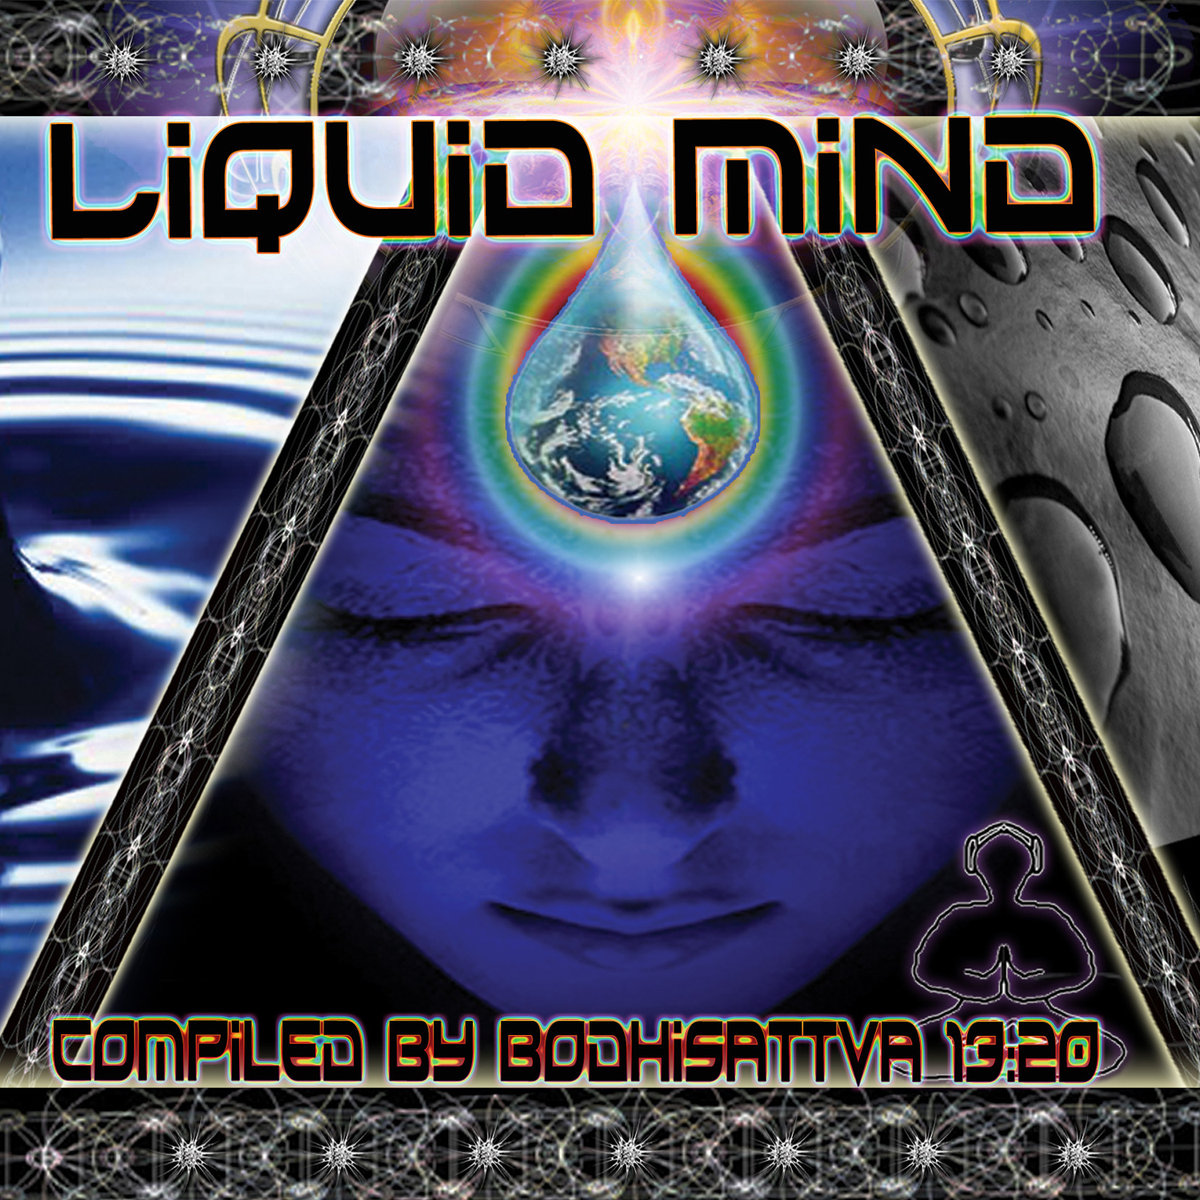 Glyph - The Arc @ 'Various Artists - Liquid Mind (Compiled by Bodhisattva 13:20)' album (electronic, and)